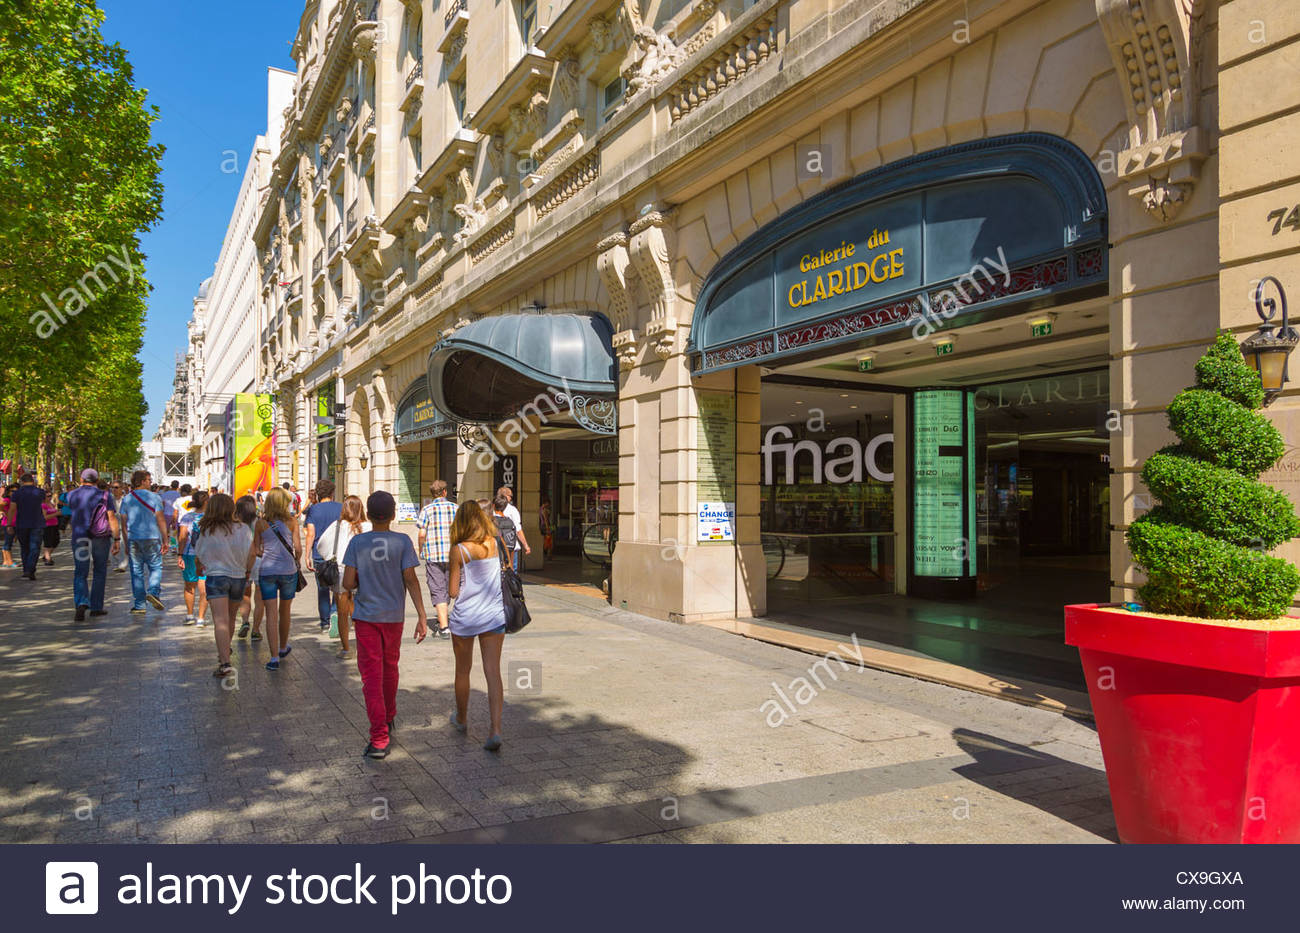 shops on avenue champs elysees paris france stock photo 50612642 alamy. Black Bedroom Furniture Sets. Home Design Ideas